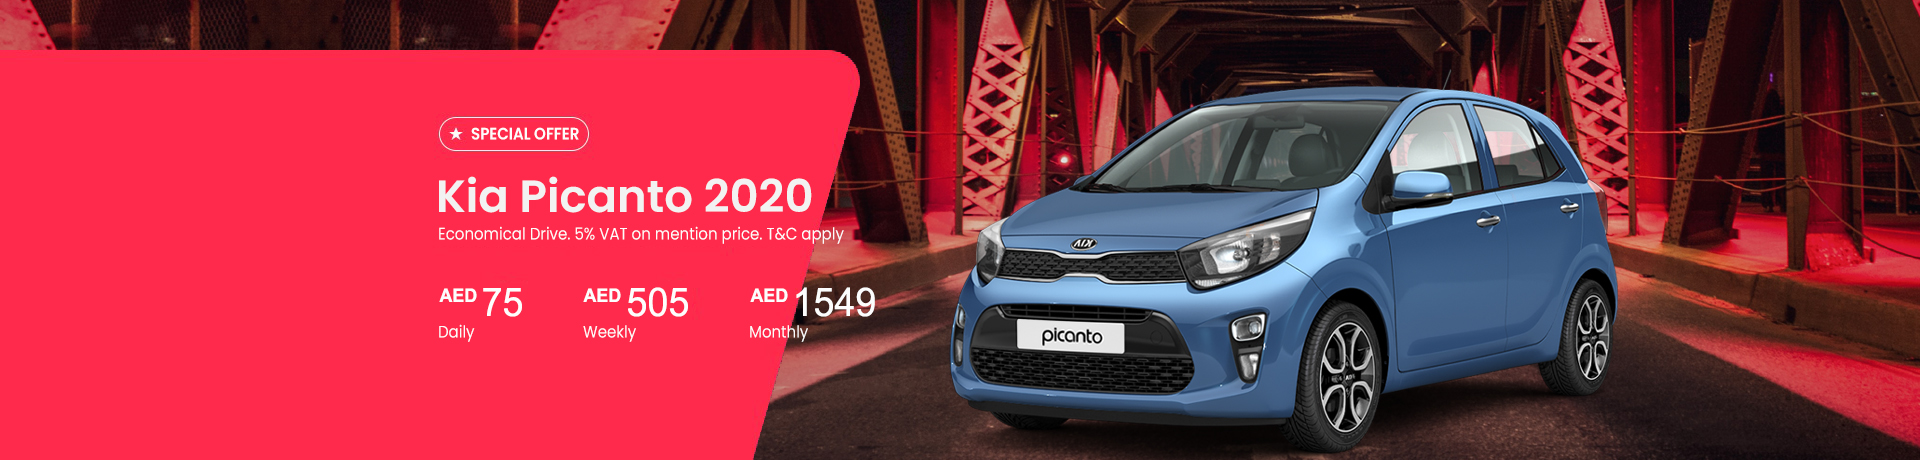 Car Hire Promotion on Kia Picanto